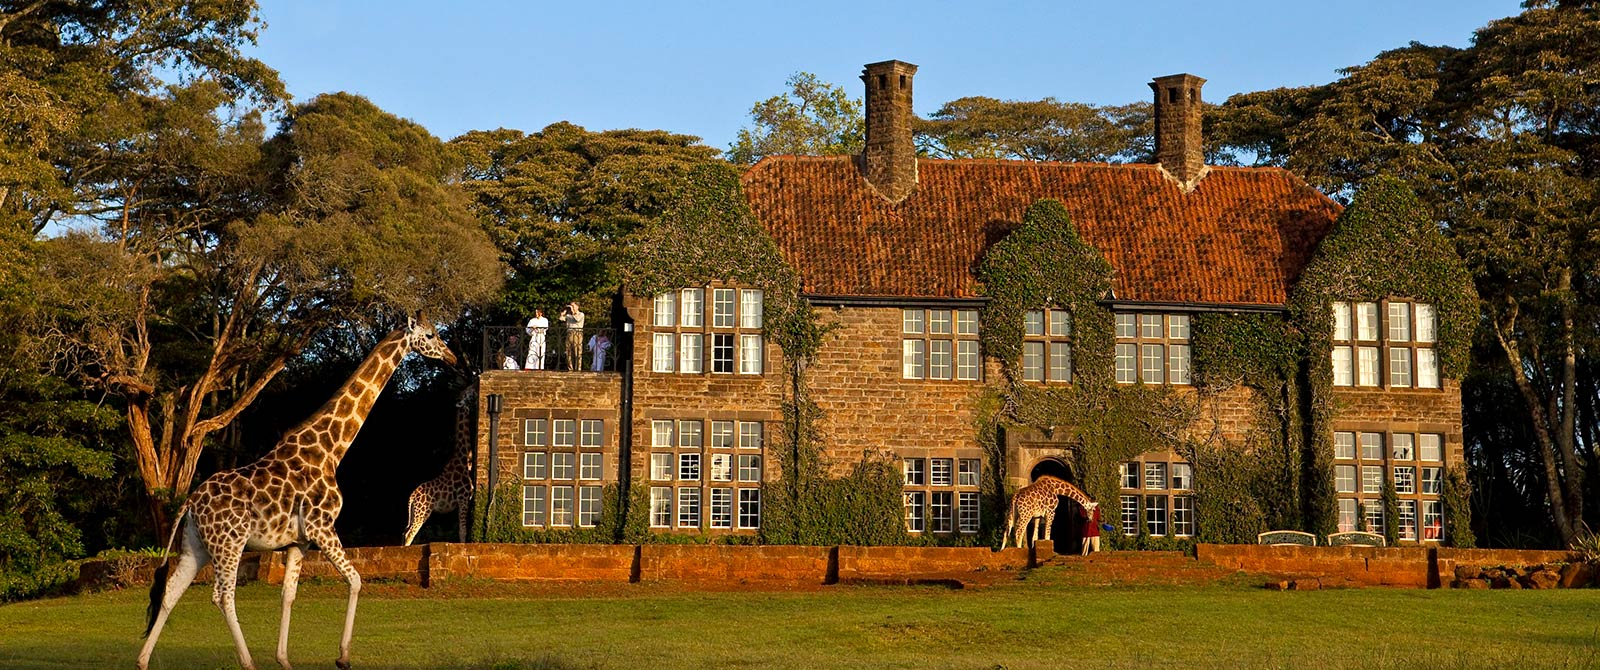 Romantic Kenya: Giraffe Manor and Masai Mara Safari